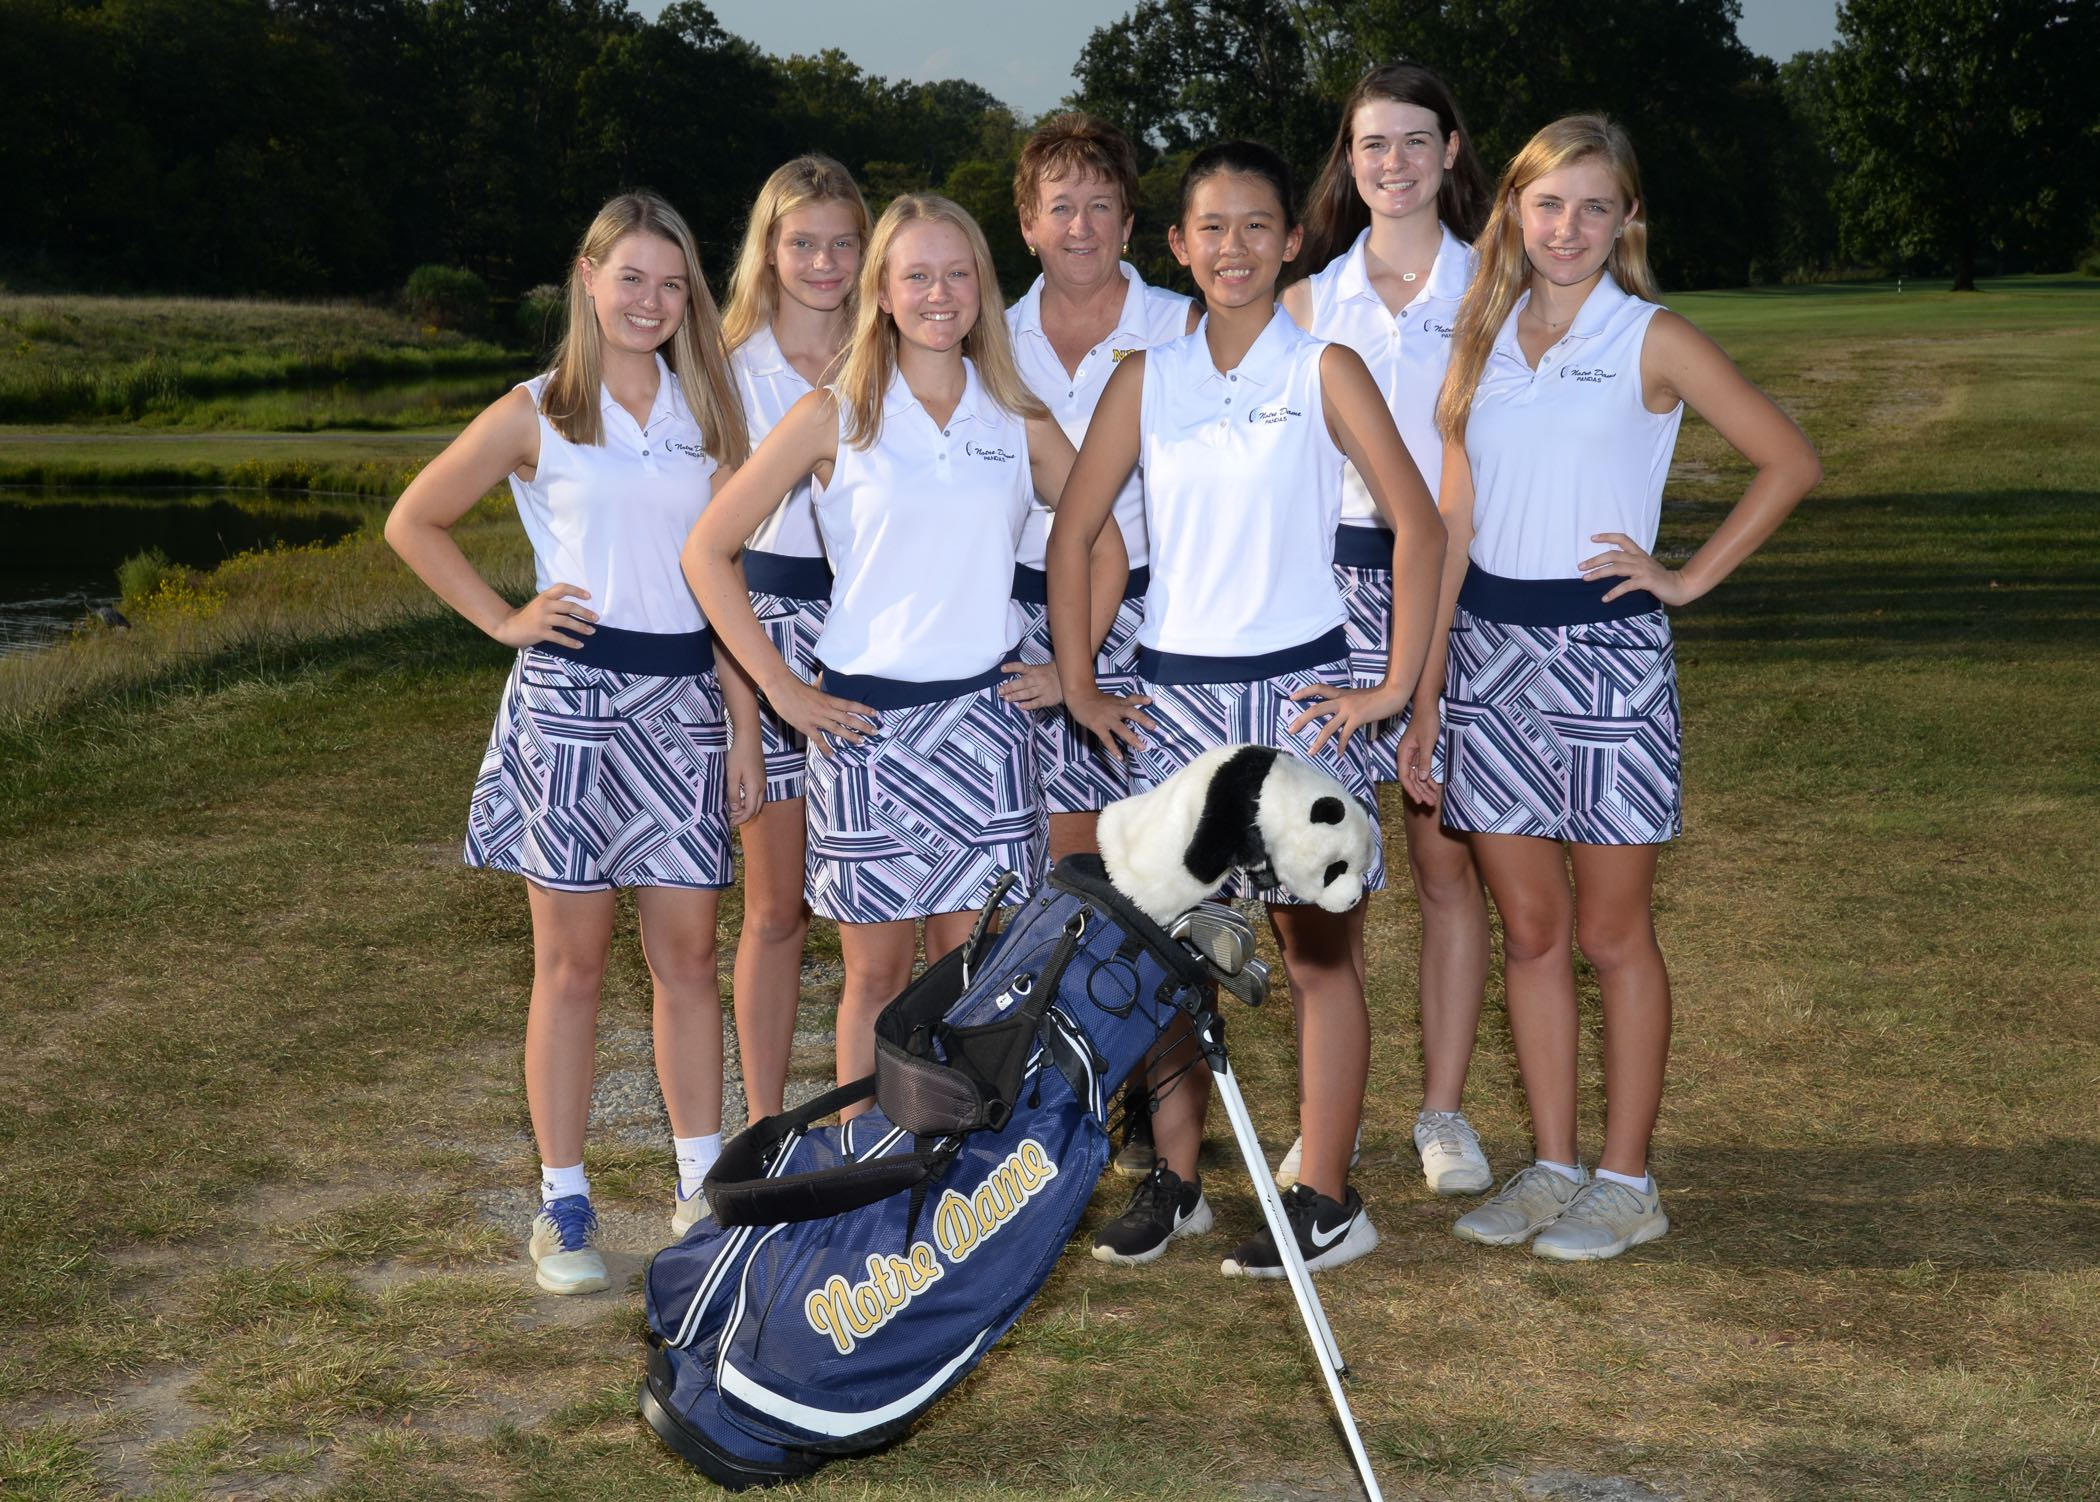 The 2020 Varsity Golf team, at the Notre Dame Academy catholic all-girls school in Covington, Northern Kentucky.